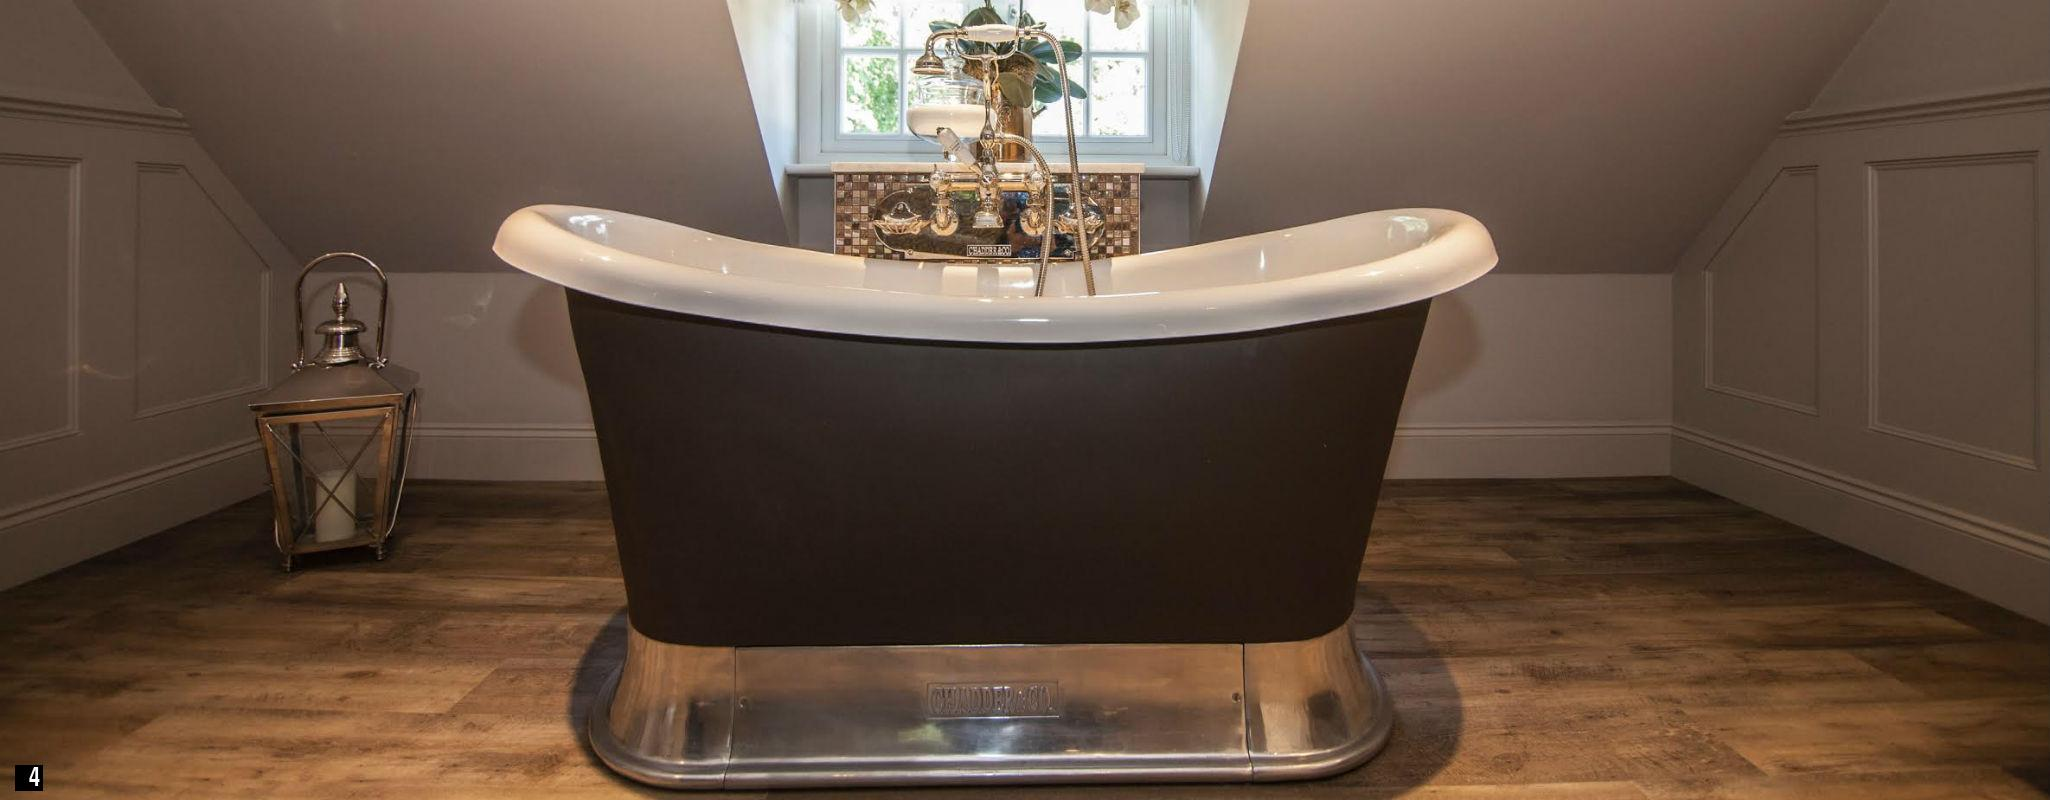 Bespoke Cisterns and Bespoke Cistern, Vintage Bathrooms